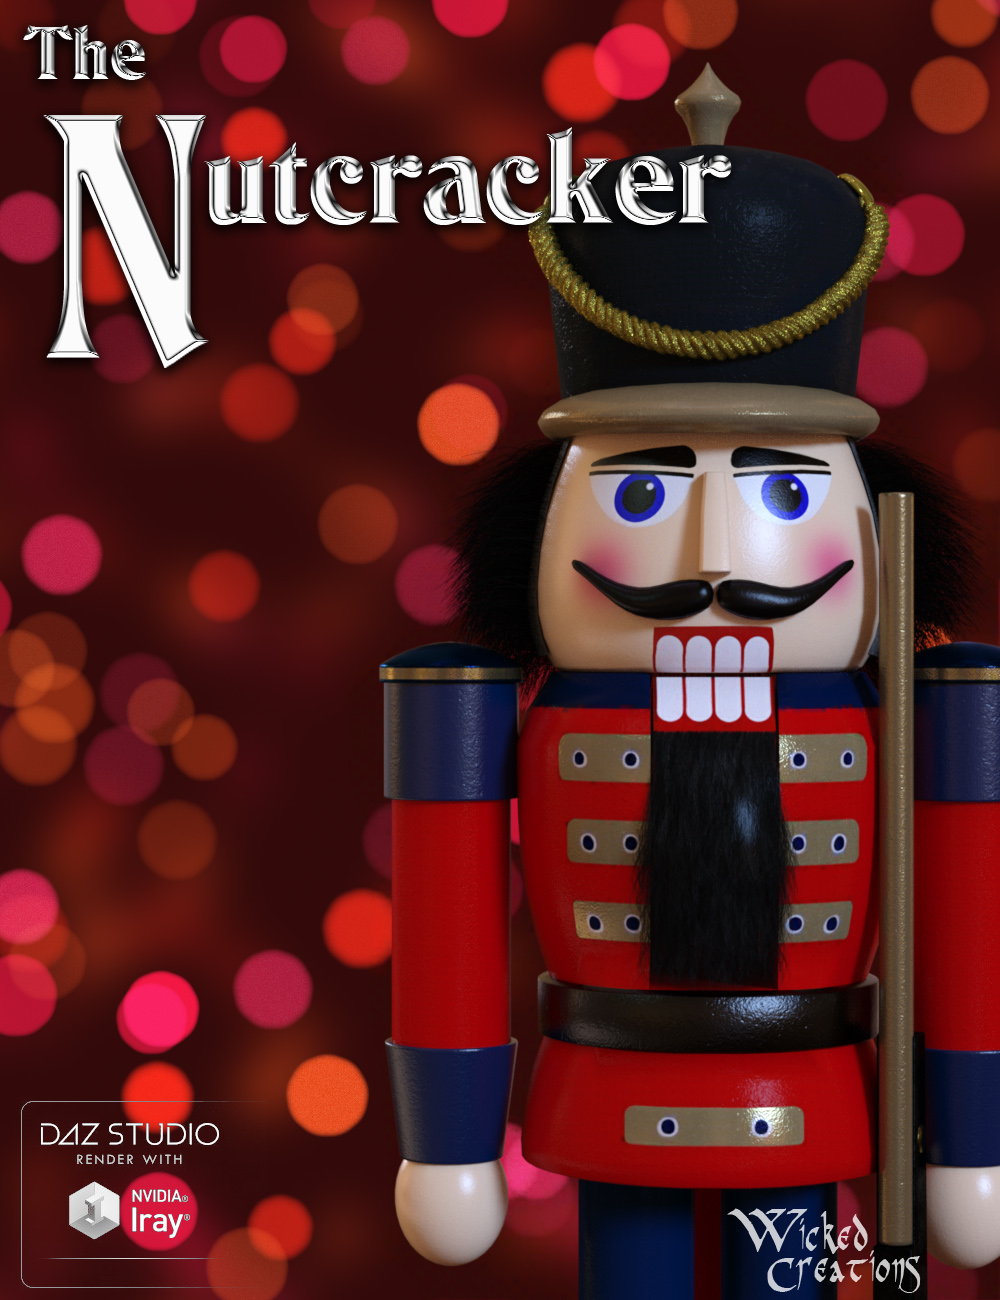 The Nutcracker by: Wicked Creations, 3D Models by Daz 3D